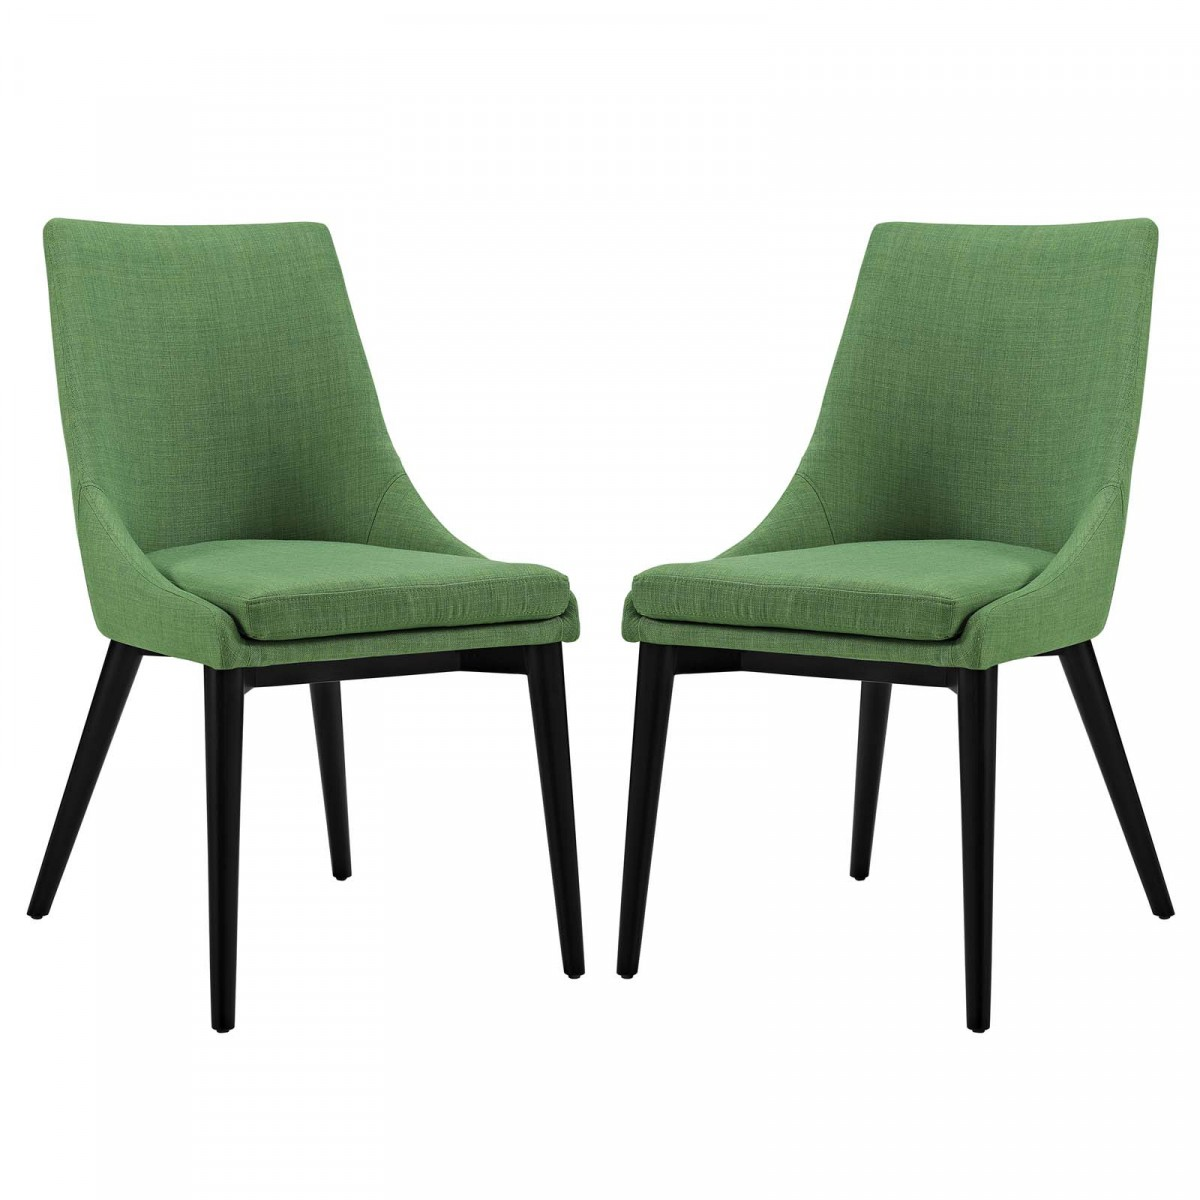 Modway Viscount Kelly Green Fabric Dining Side Chair